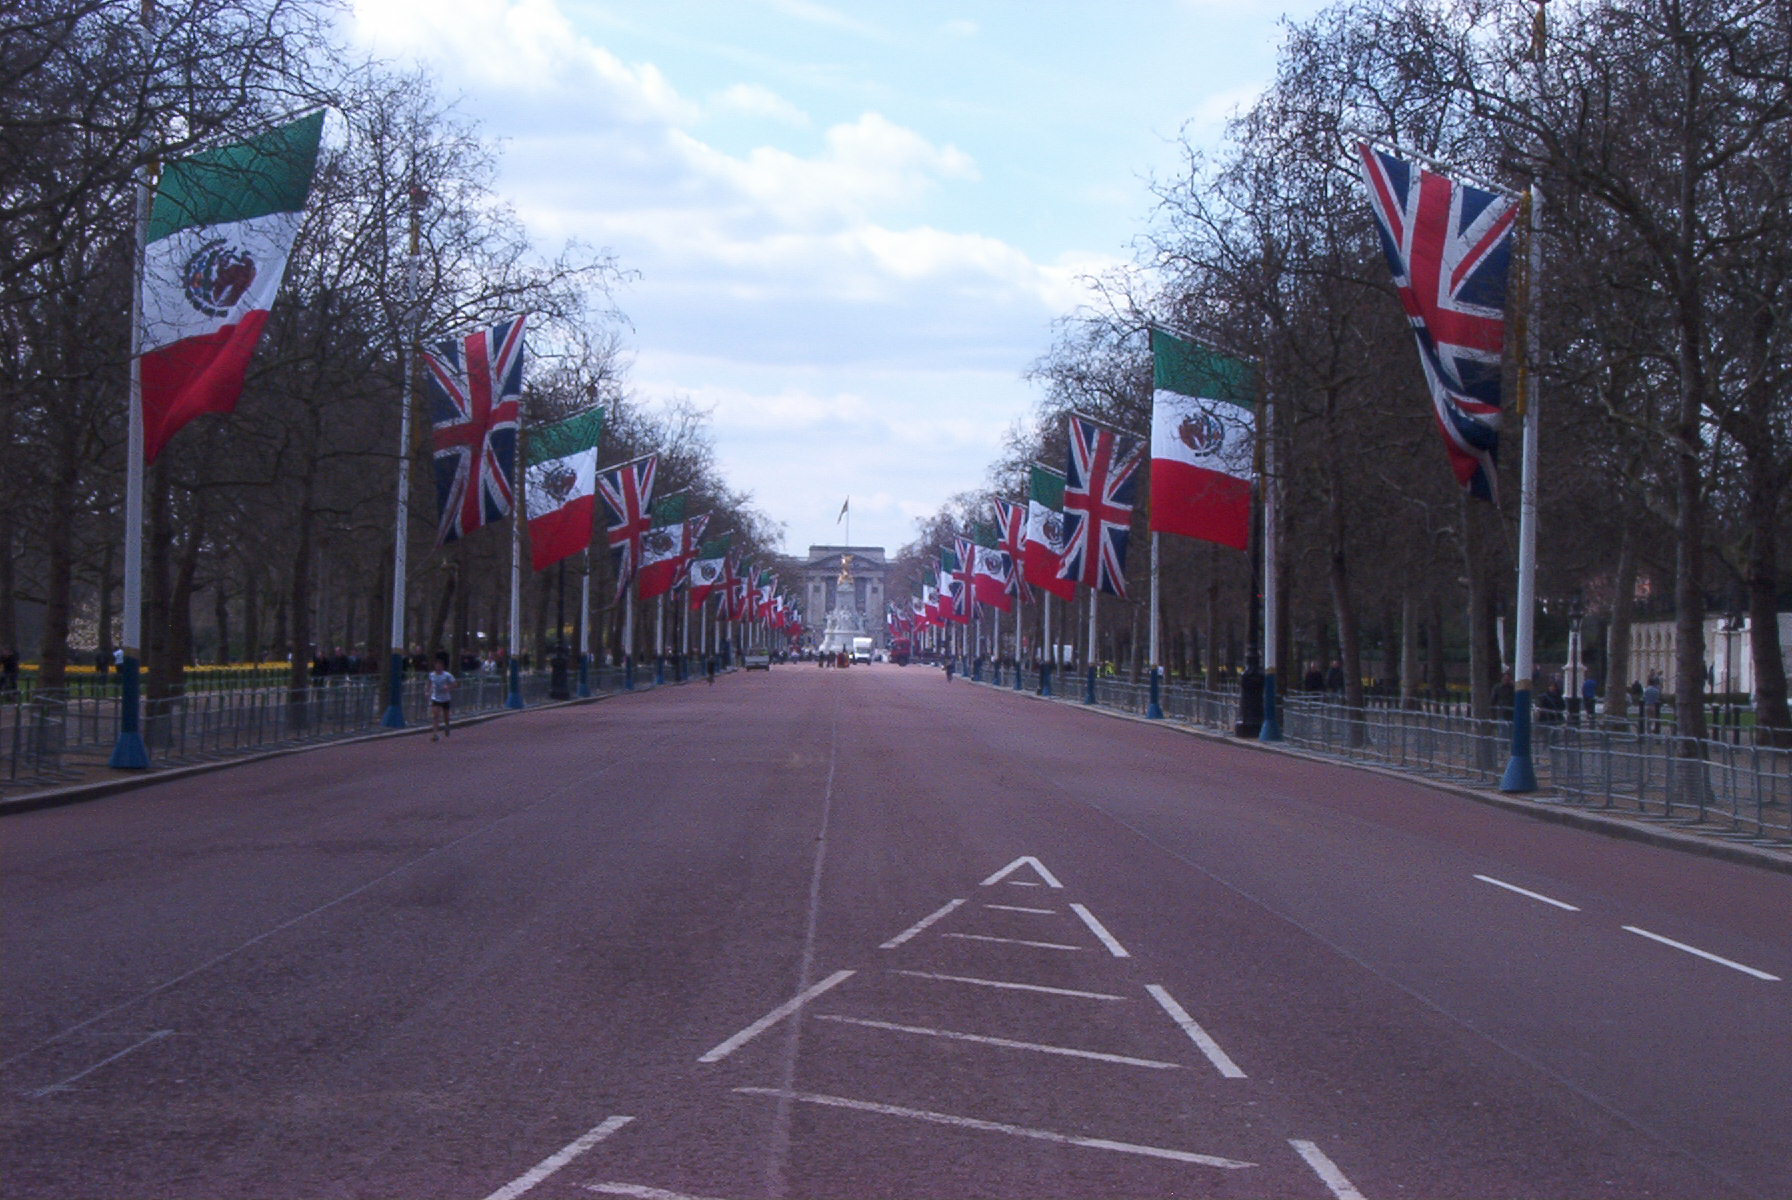 The Mall Is The Road Which Links Buckingham Palace With